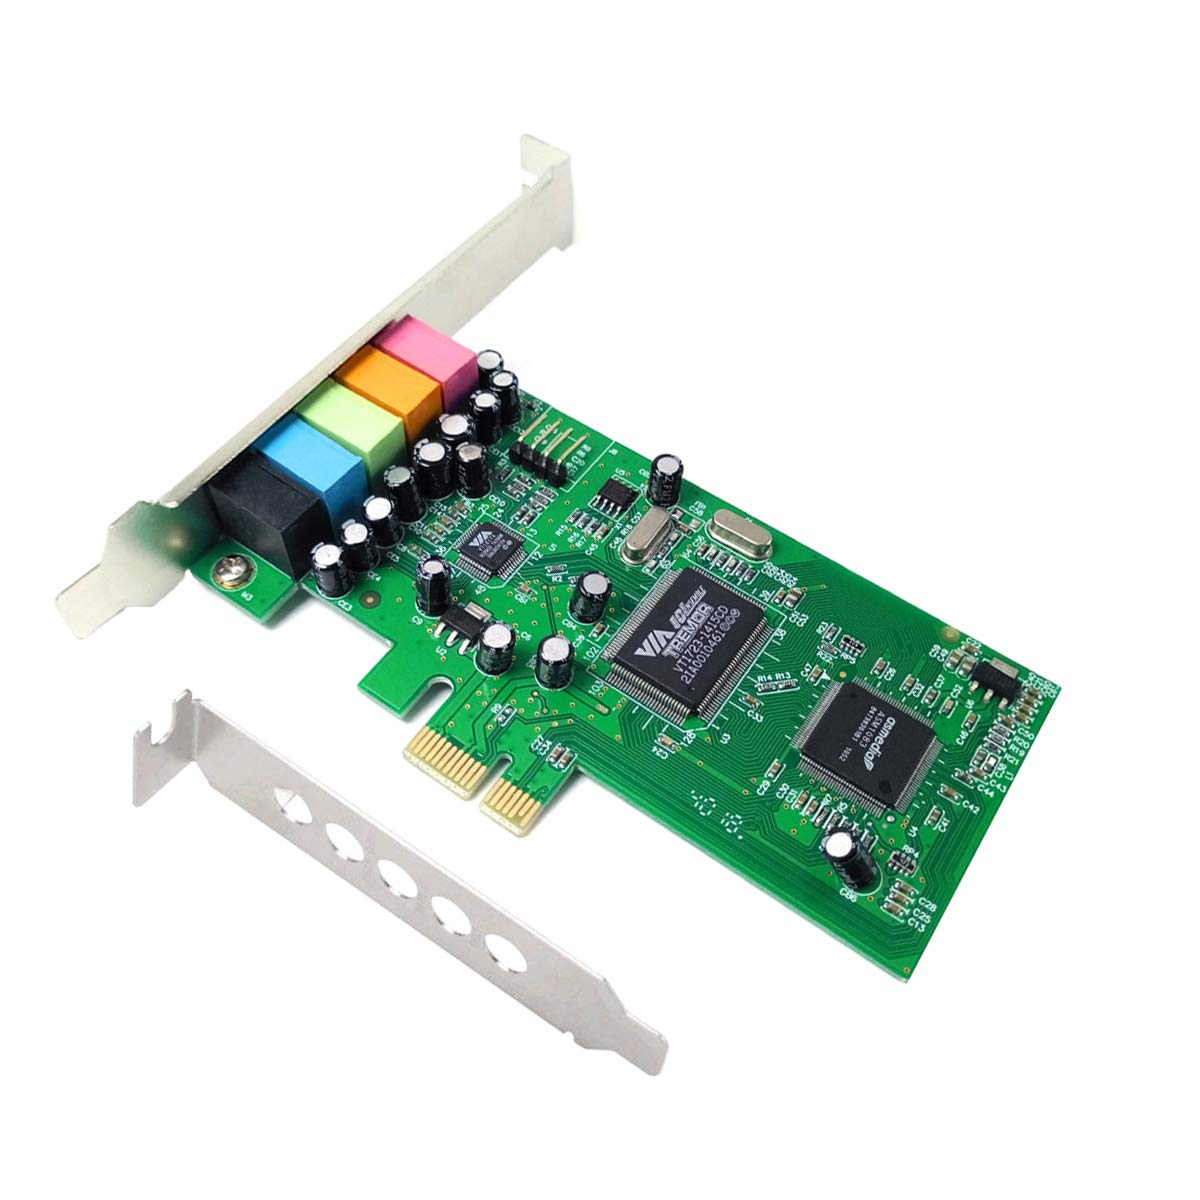 ELIATER PCIe Sound Card for PC Windows 10, 5.1 Sound Card 3D Stereo PCI-e Audio Card with Low Profile Bracket, VIA 1723 Chip 32/64 Bit Sound Card for Windows 7/8/10/XP by ELIATER